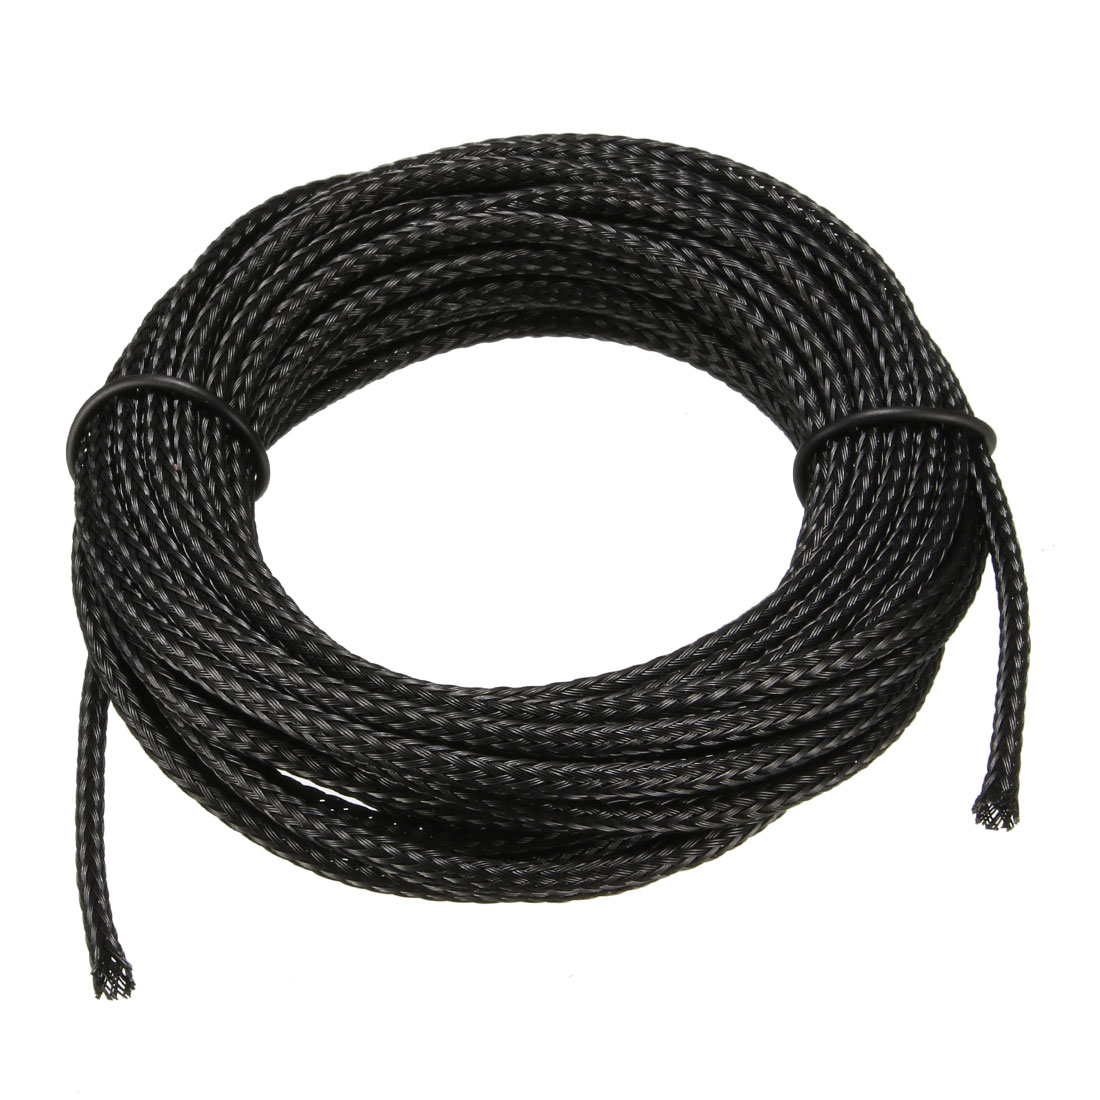 4mm Flat Dia Tight Braided PET Expandable Sleeving Cable Wrap Sheath Black 5M